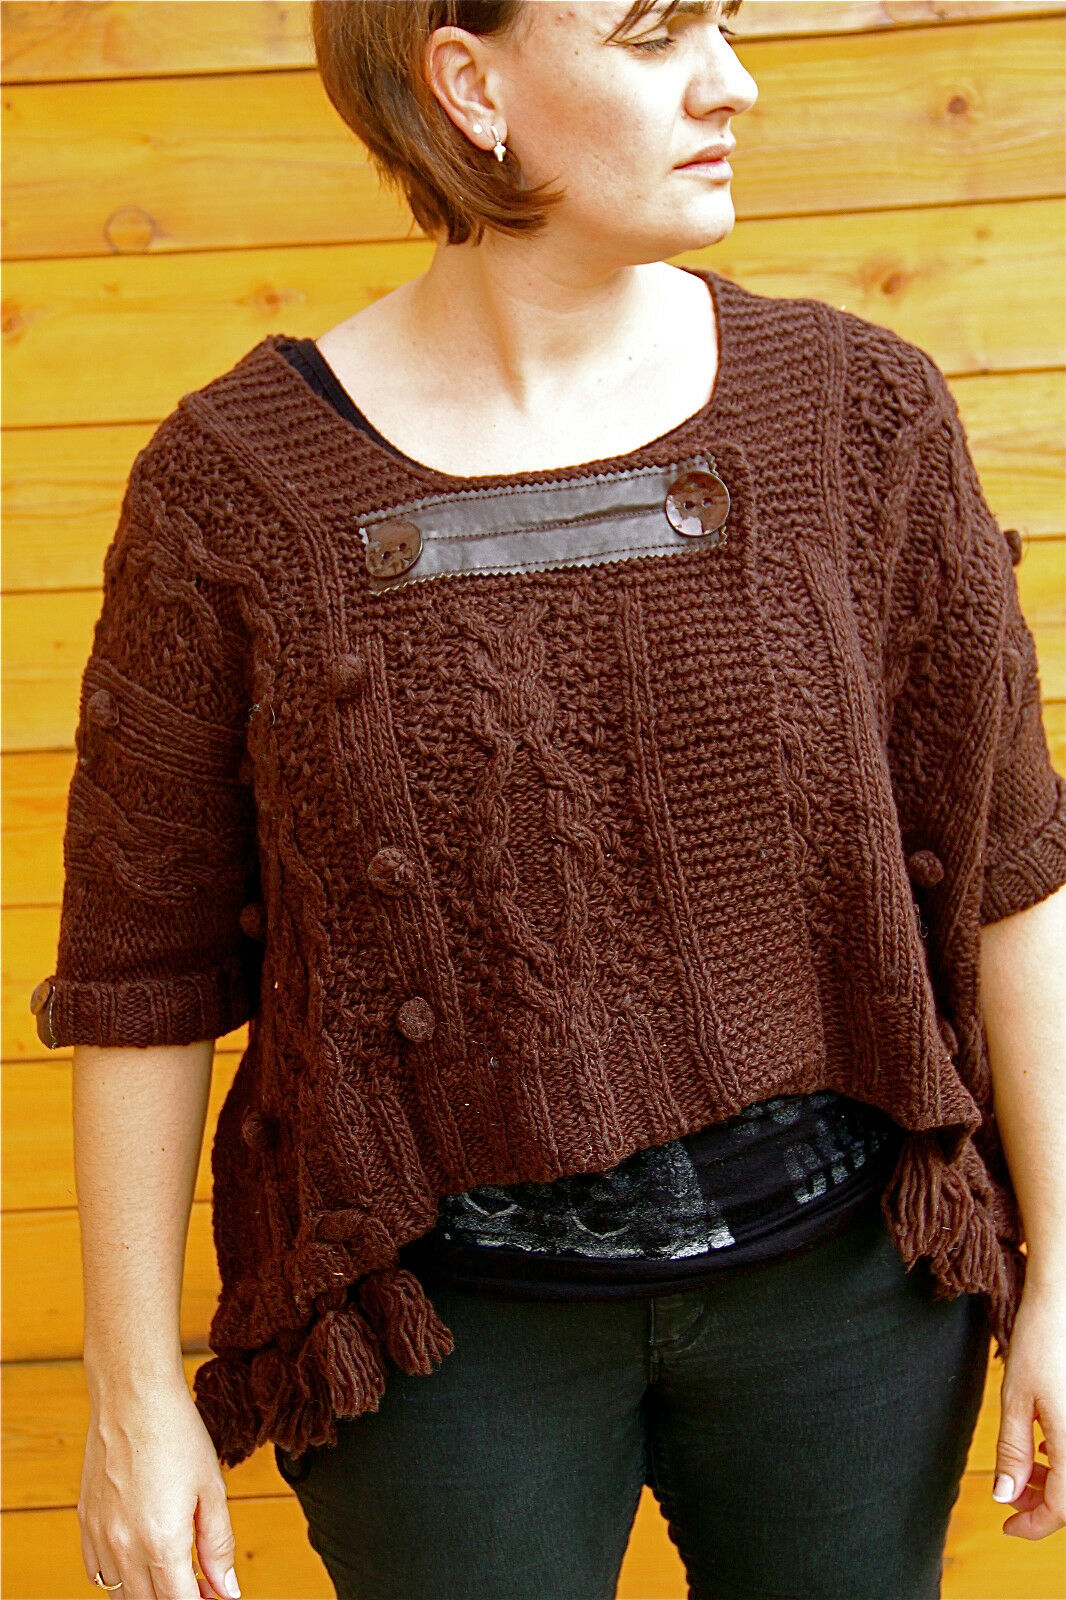 Wool vest brown winter MC PLANET T 42 new label TOP RANGE val